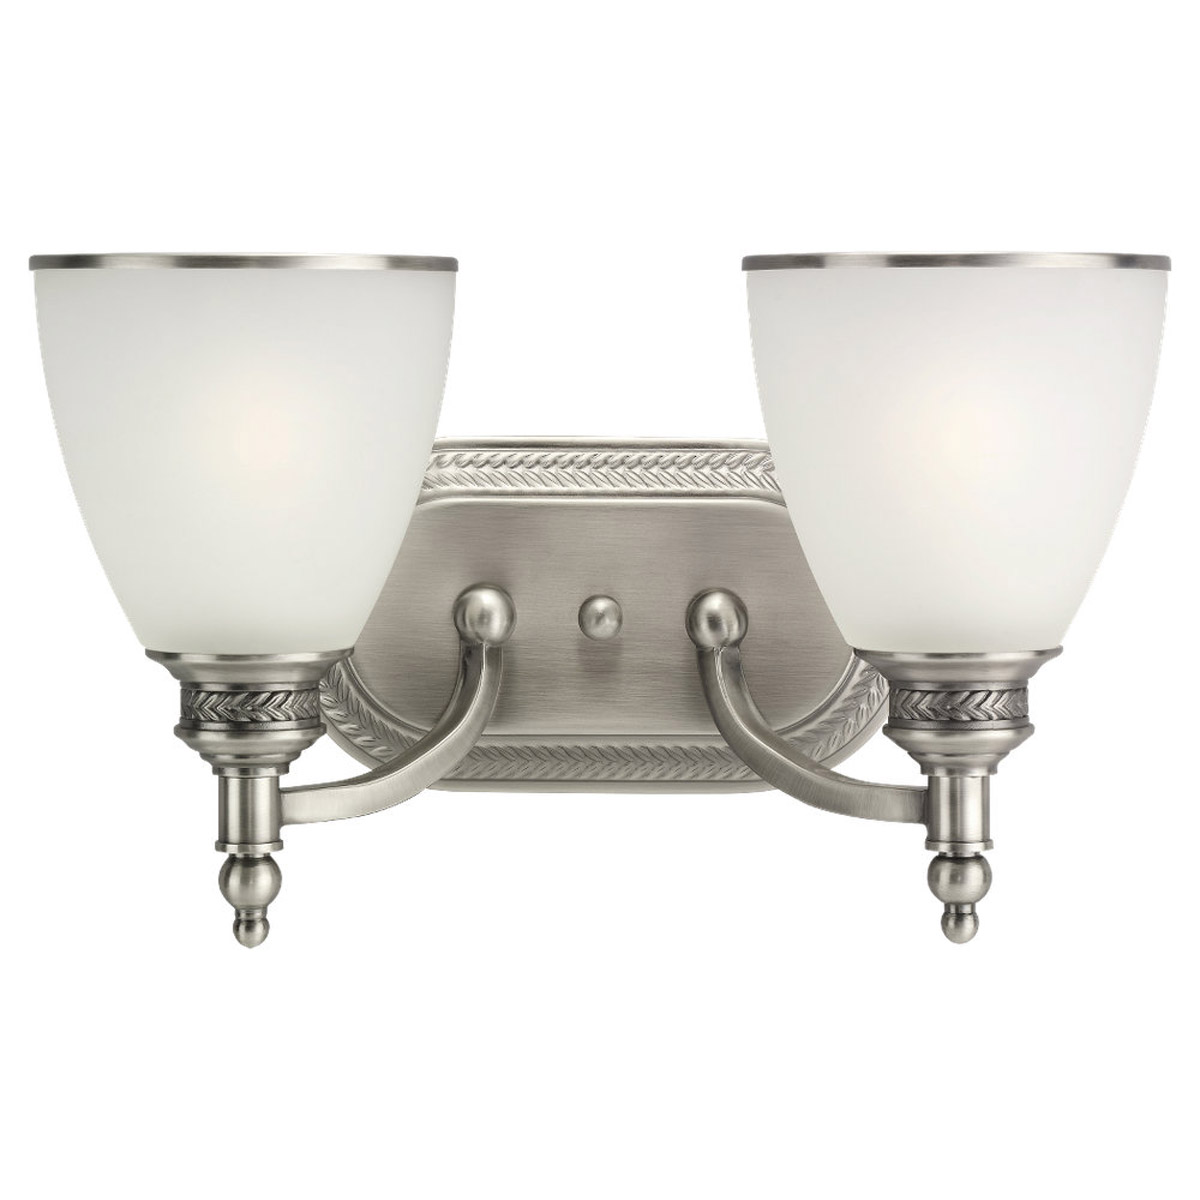 Sea Gull Lighting Laurel Leaf 2 Light Bath Vanity in Antique Brushed Nickel 44350-965